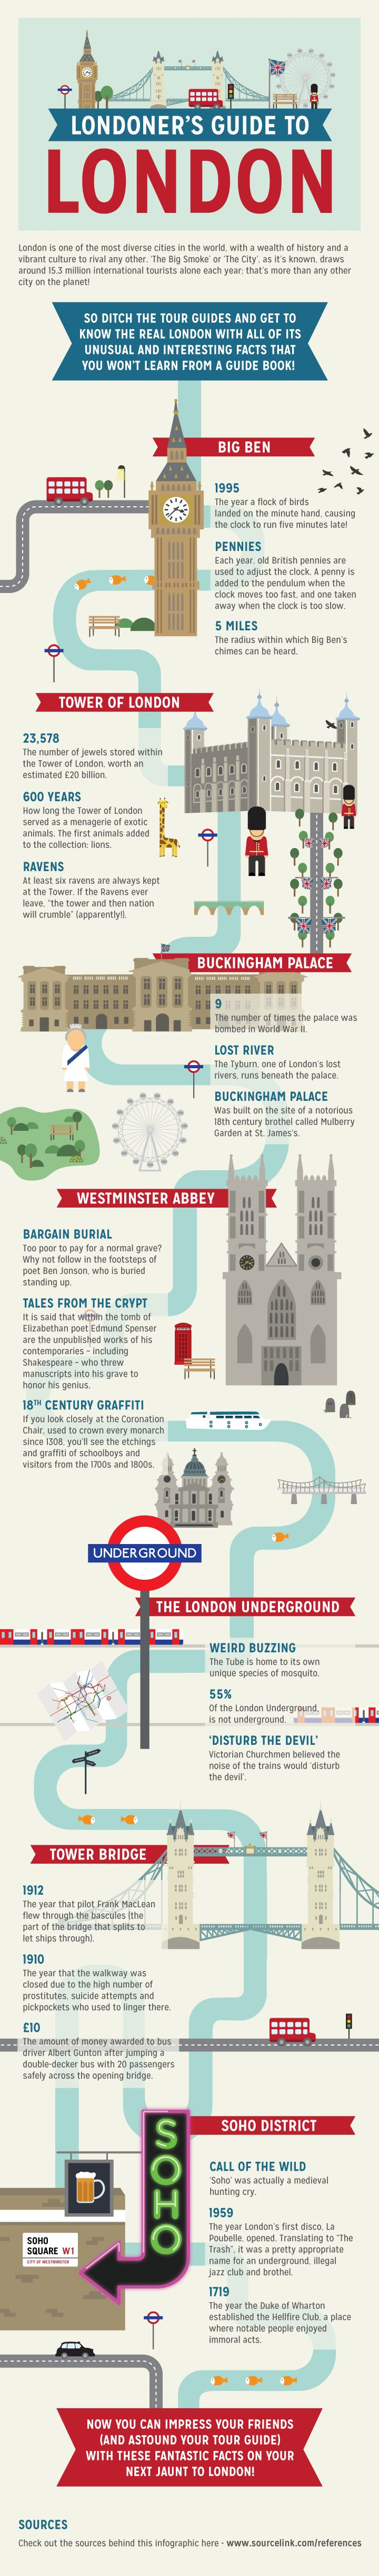 A Londoner's Guide to London.